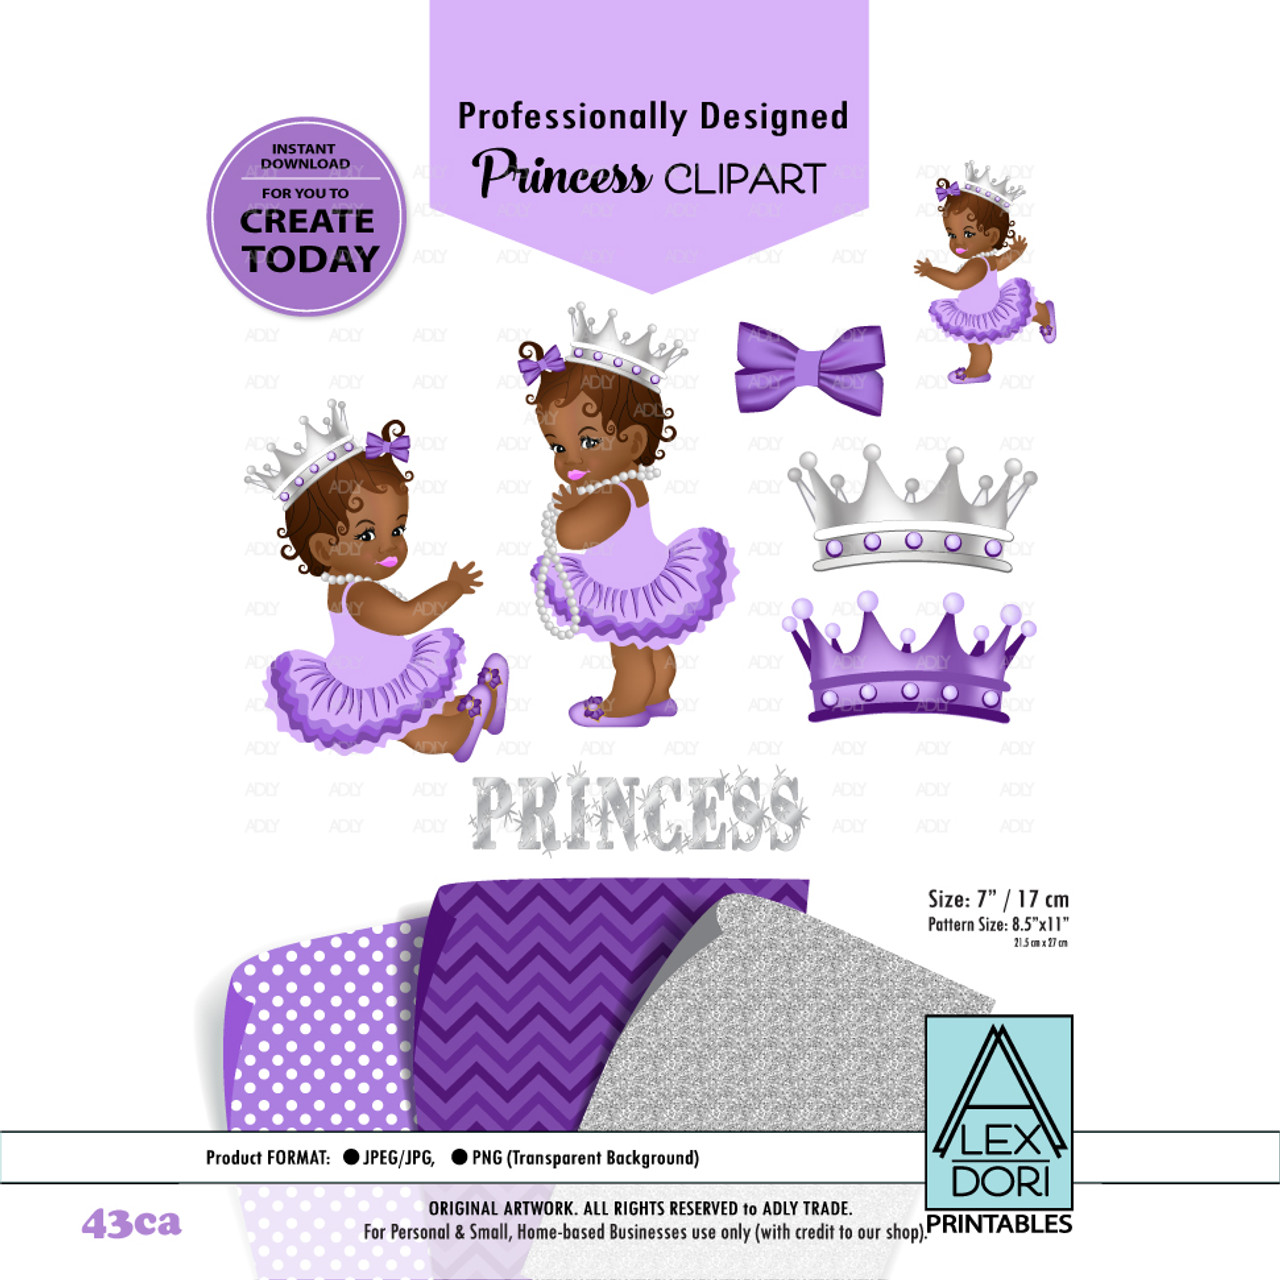 hight resolution of princess african american baby digital clipart purple and gray baby girl clipart crown clipart baby shower adly invitations and digital party designs